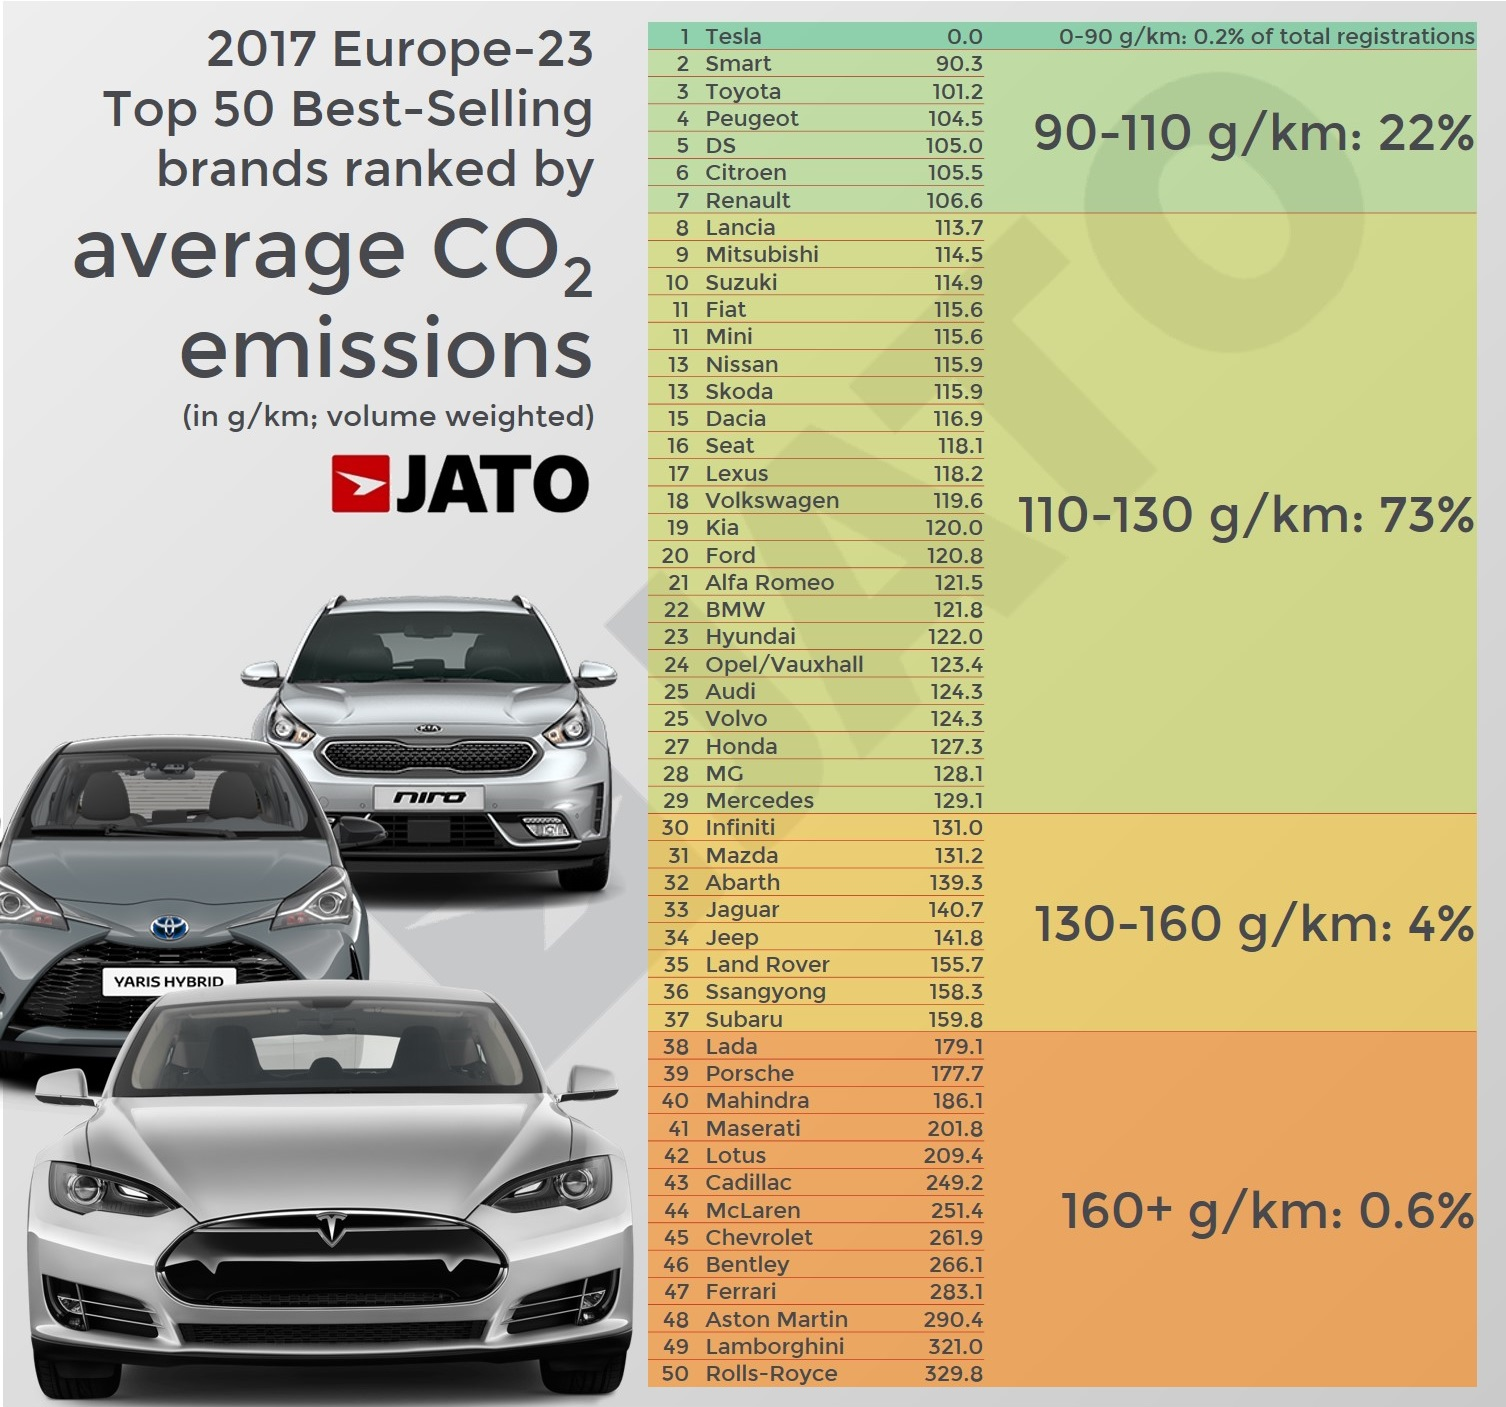 Brands With Average Co2 Emissions Between 110 130 G Km Counted For